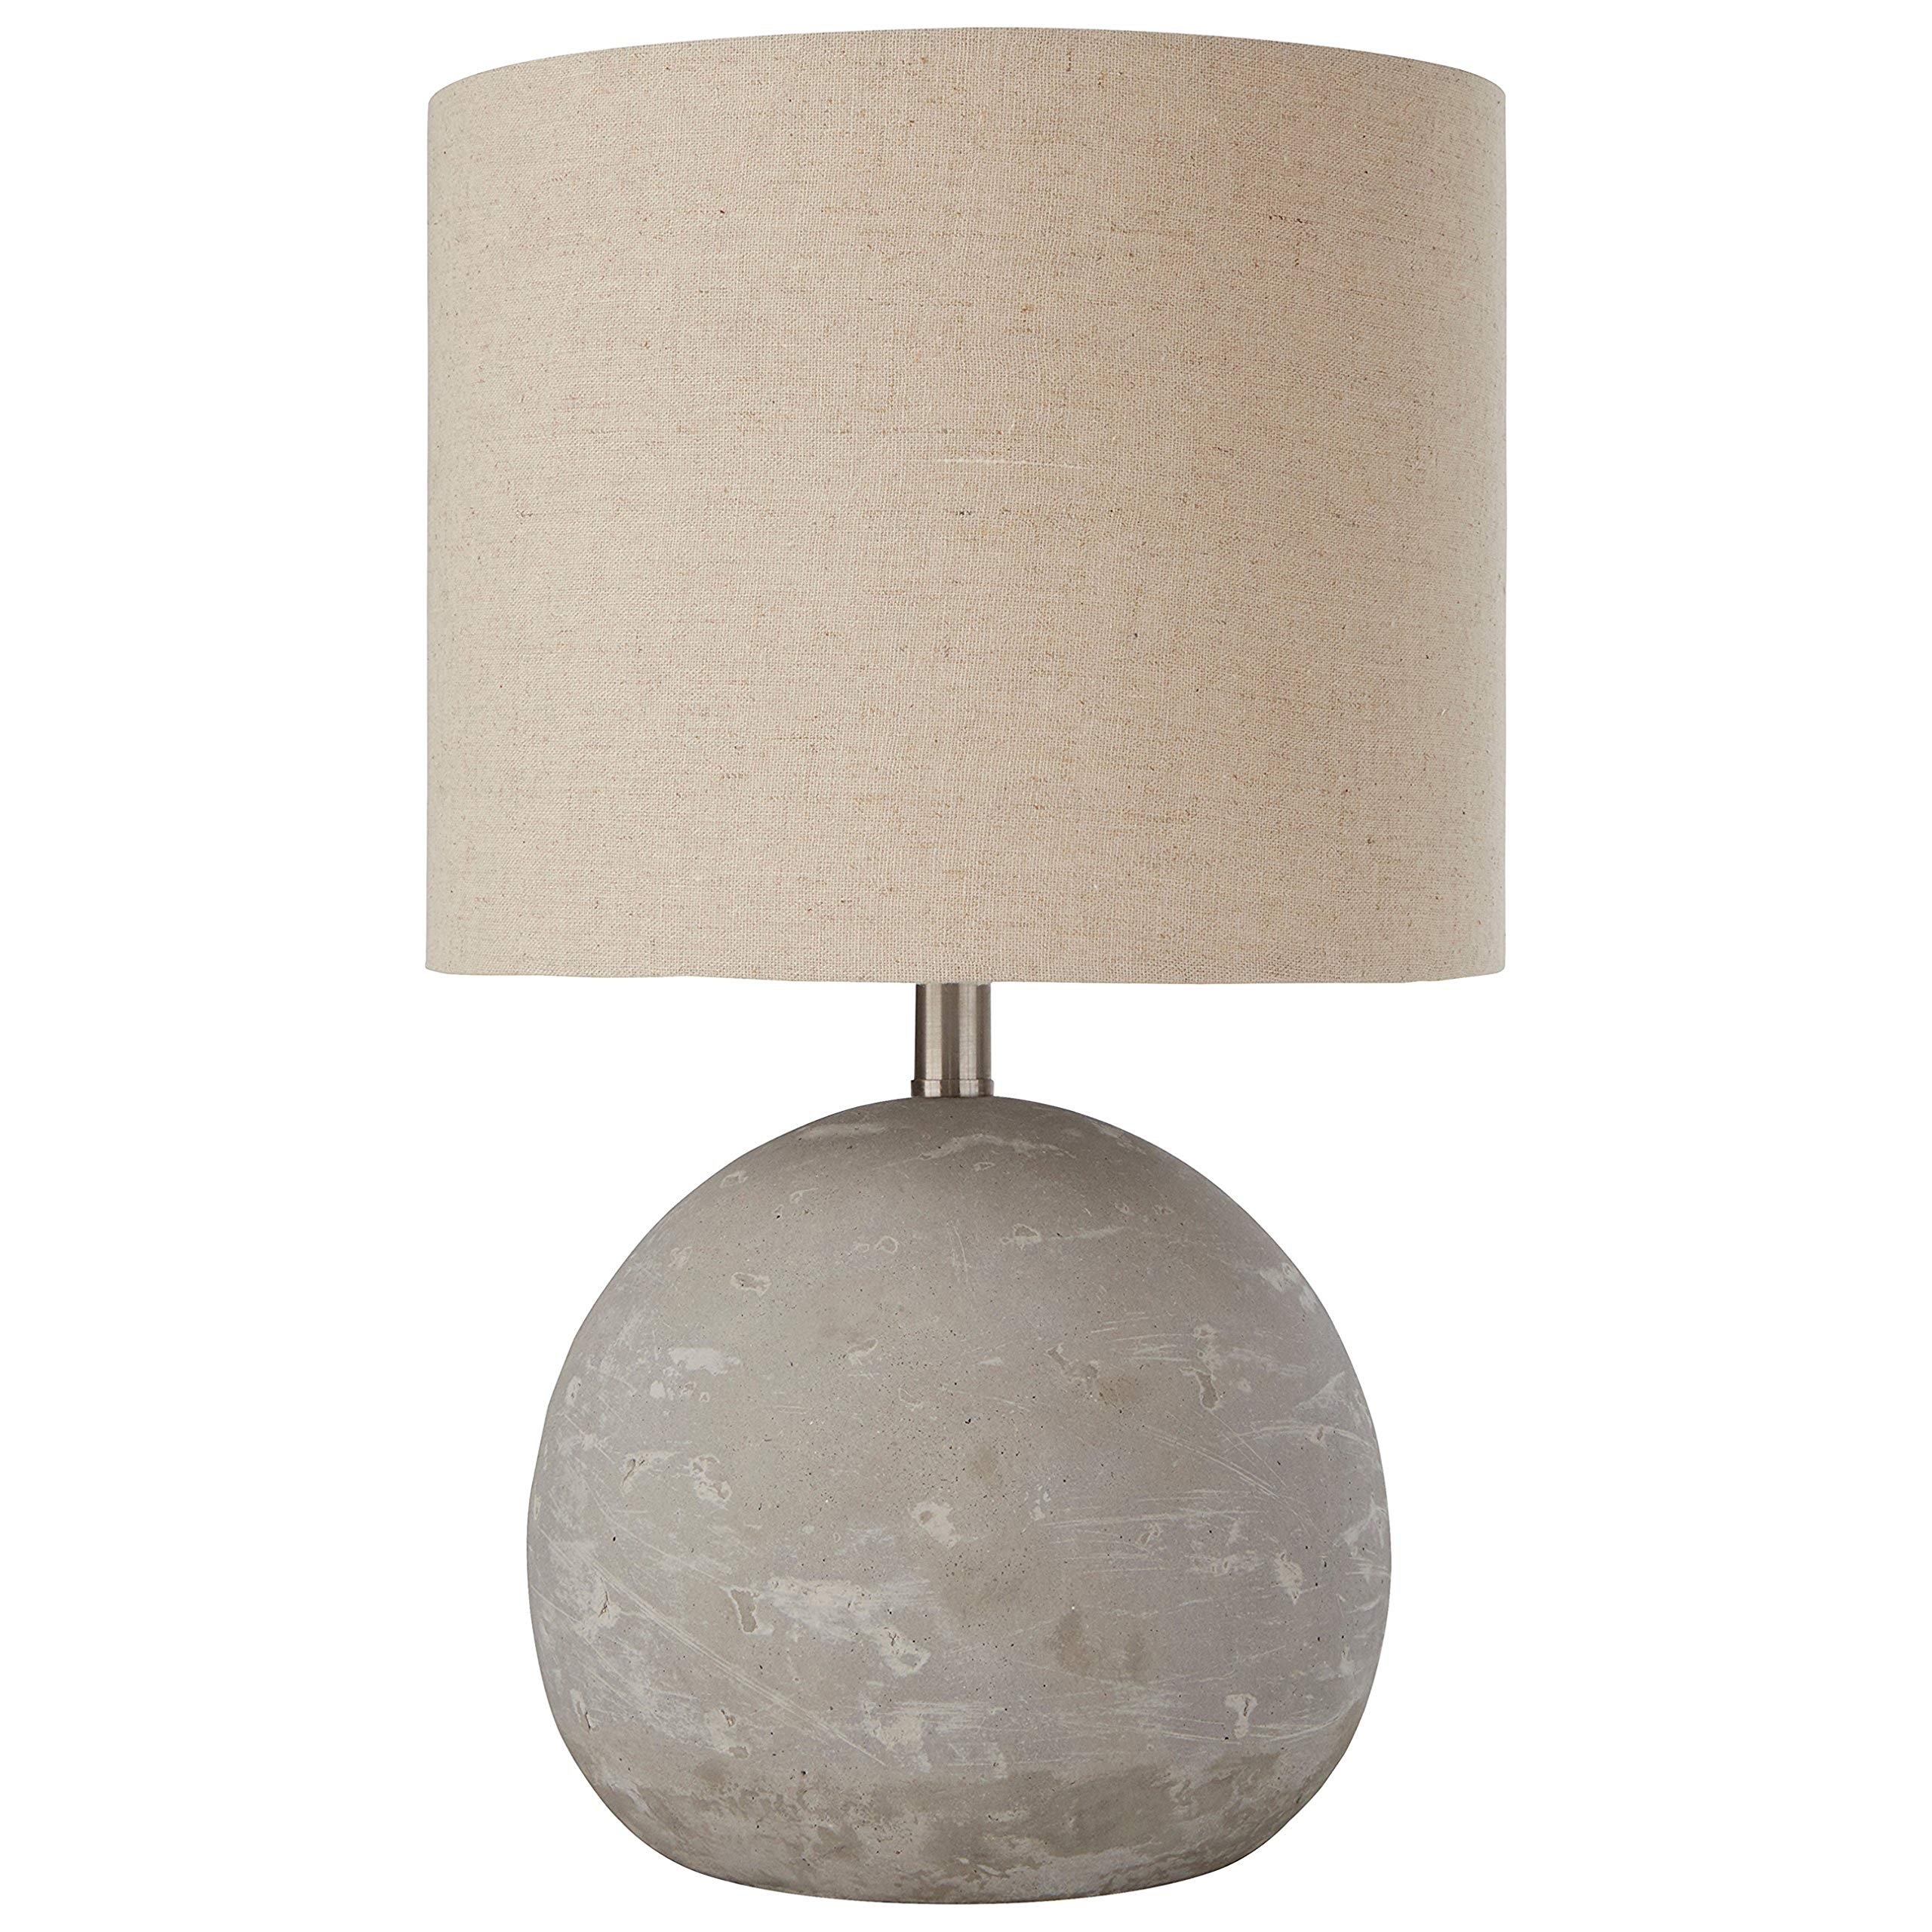 Stone & Beam Industrial Concrete Table Lamp, 16''H, With Bulb, Brown Shade